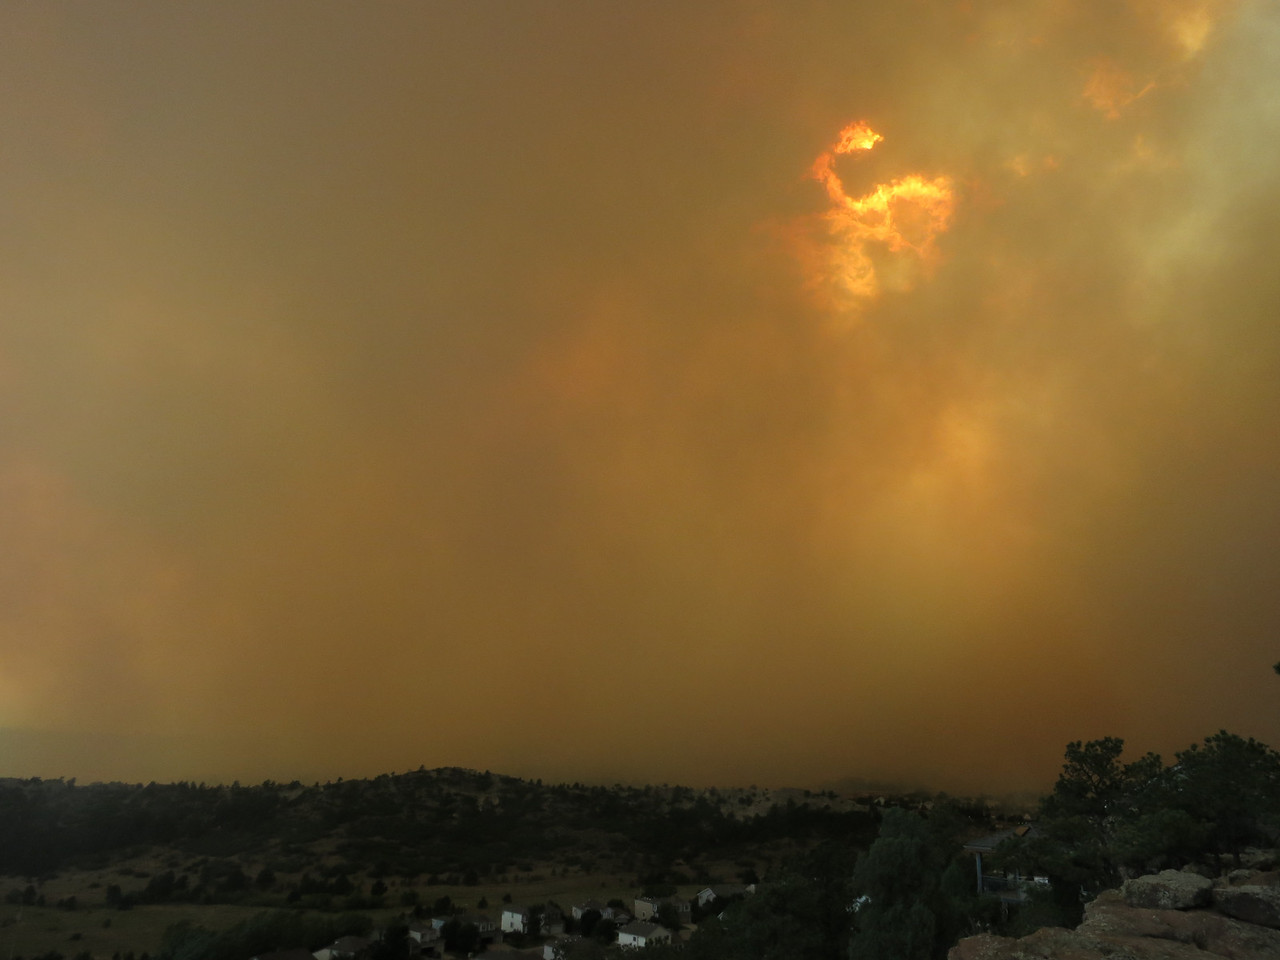 5:10 pm - a shift in the wind is now carrying the smoke to us.